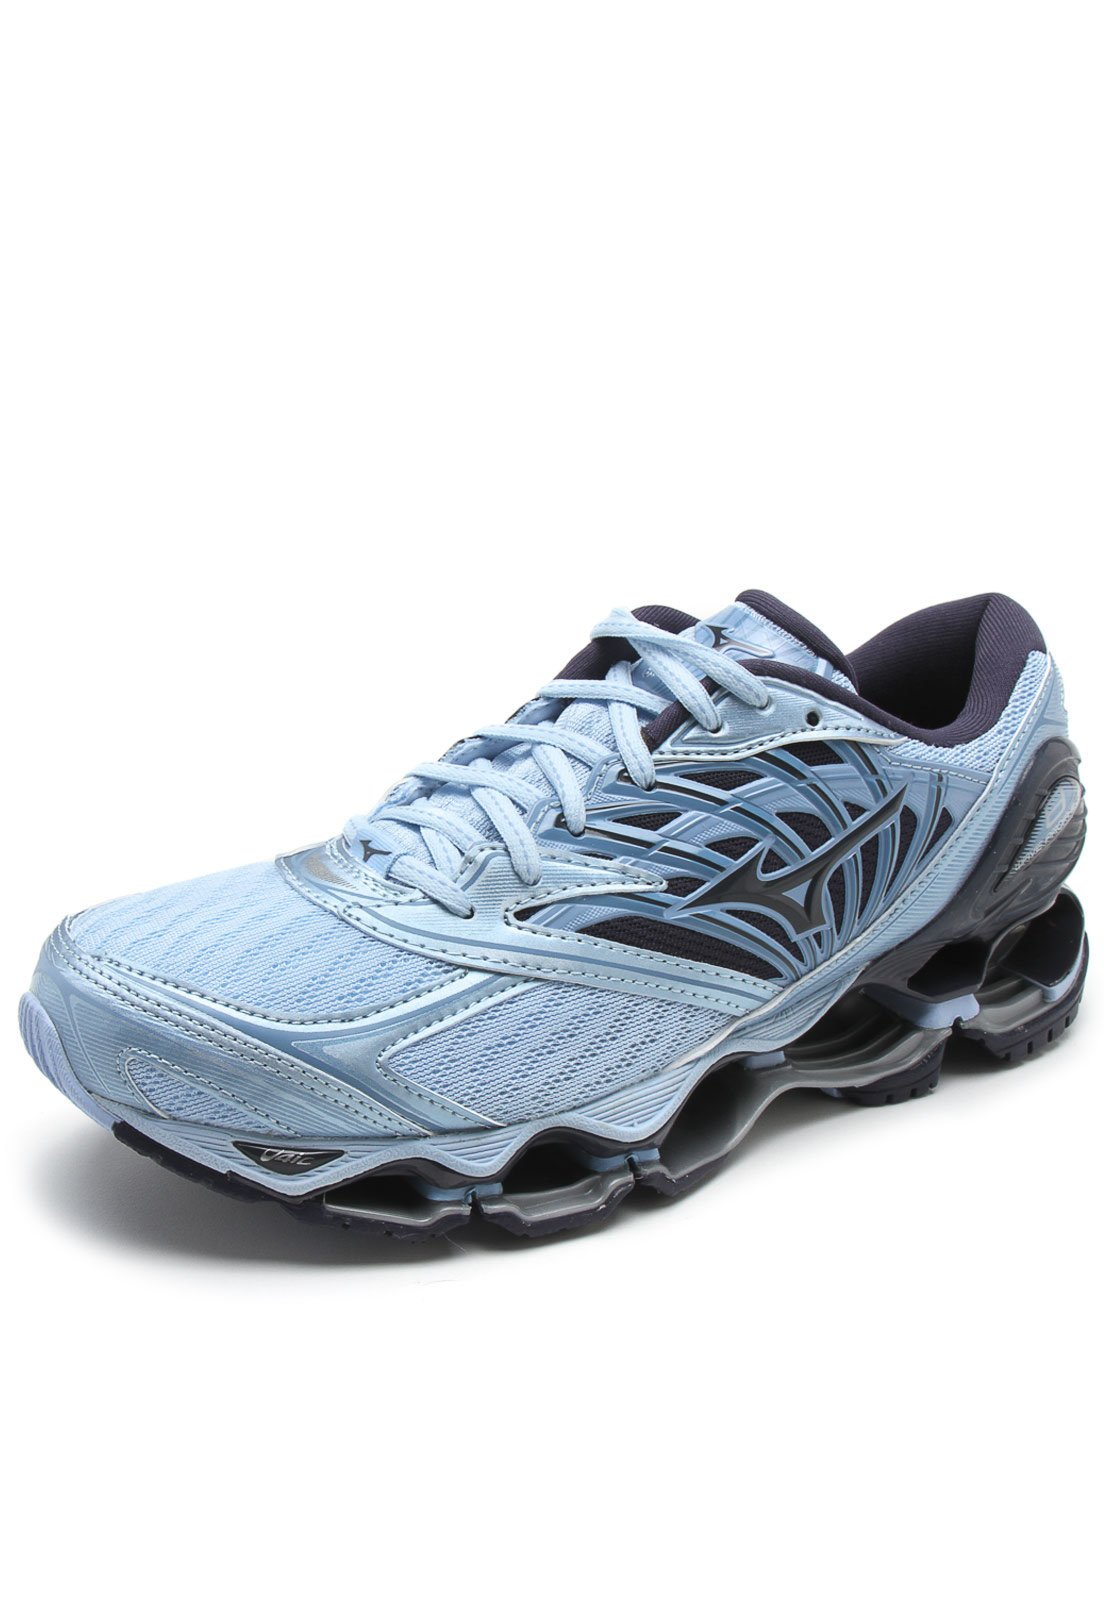 mizuno womens volleyball shoes size 8 x 3 free eu hosting